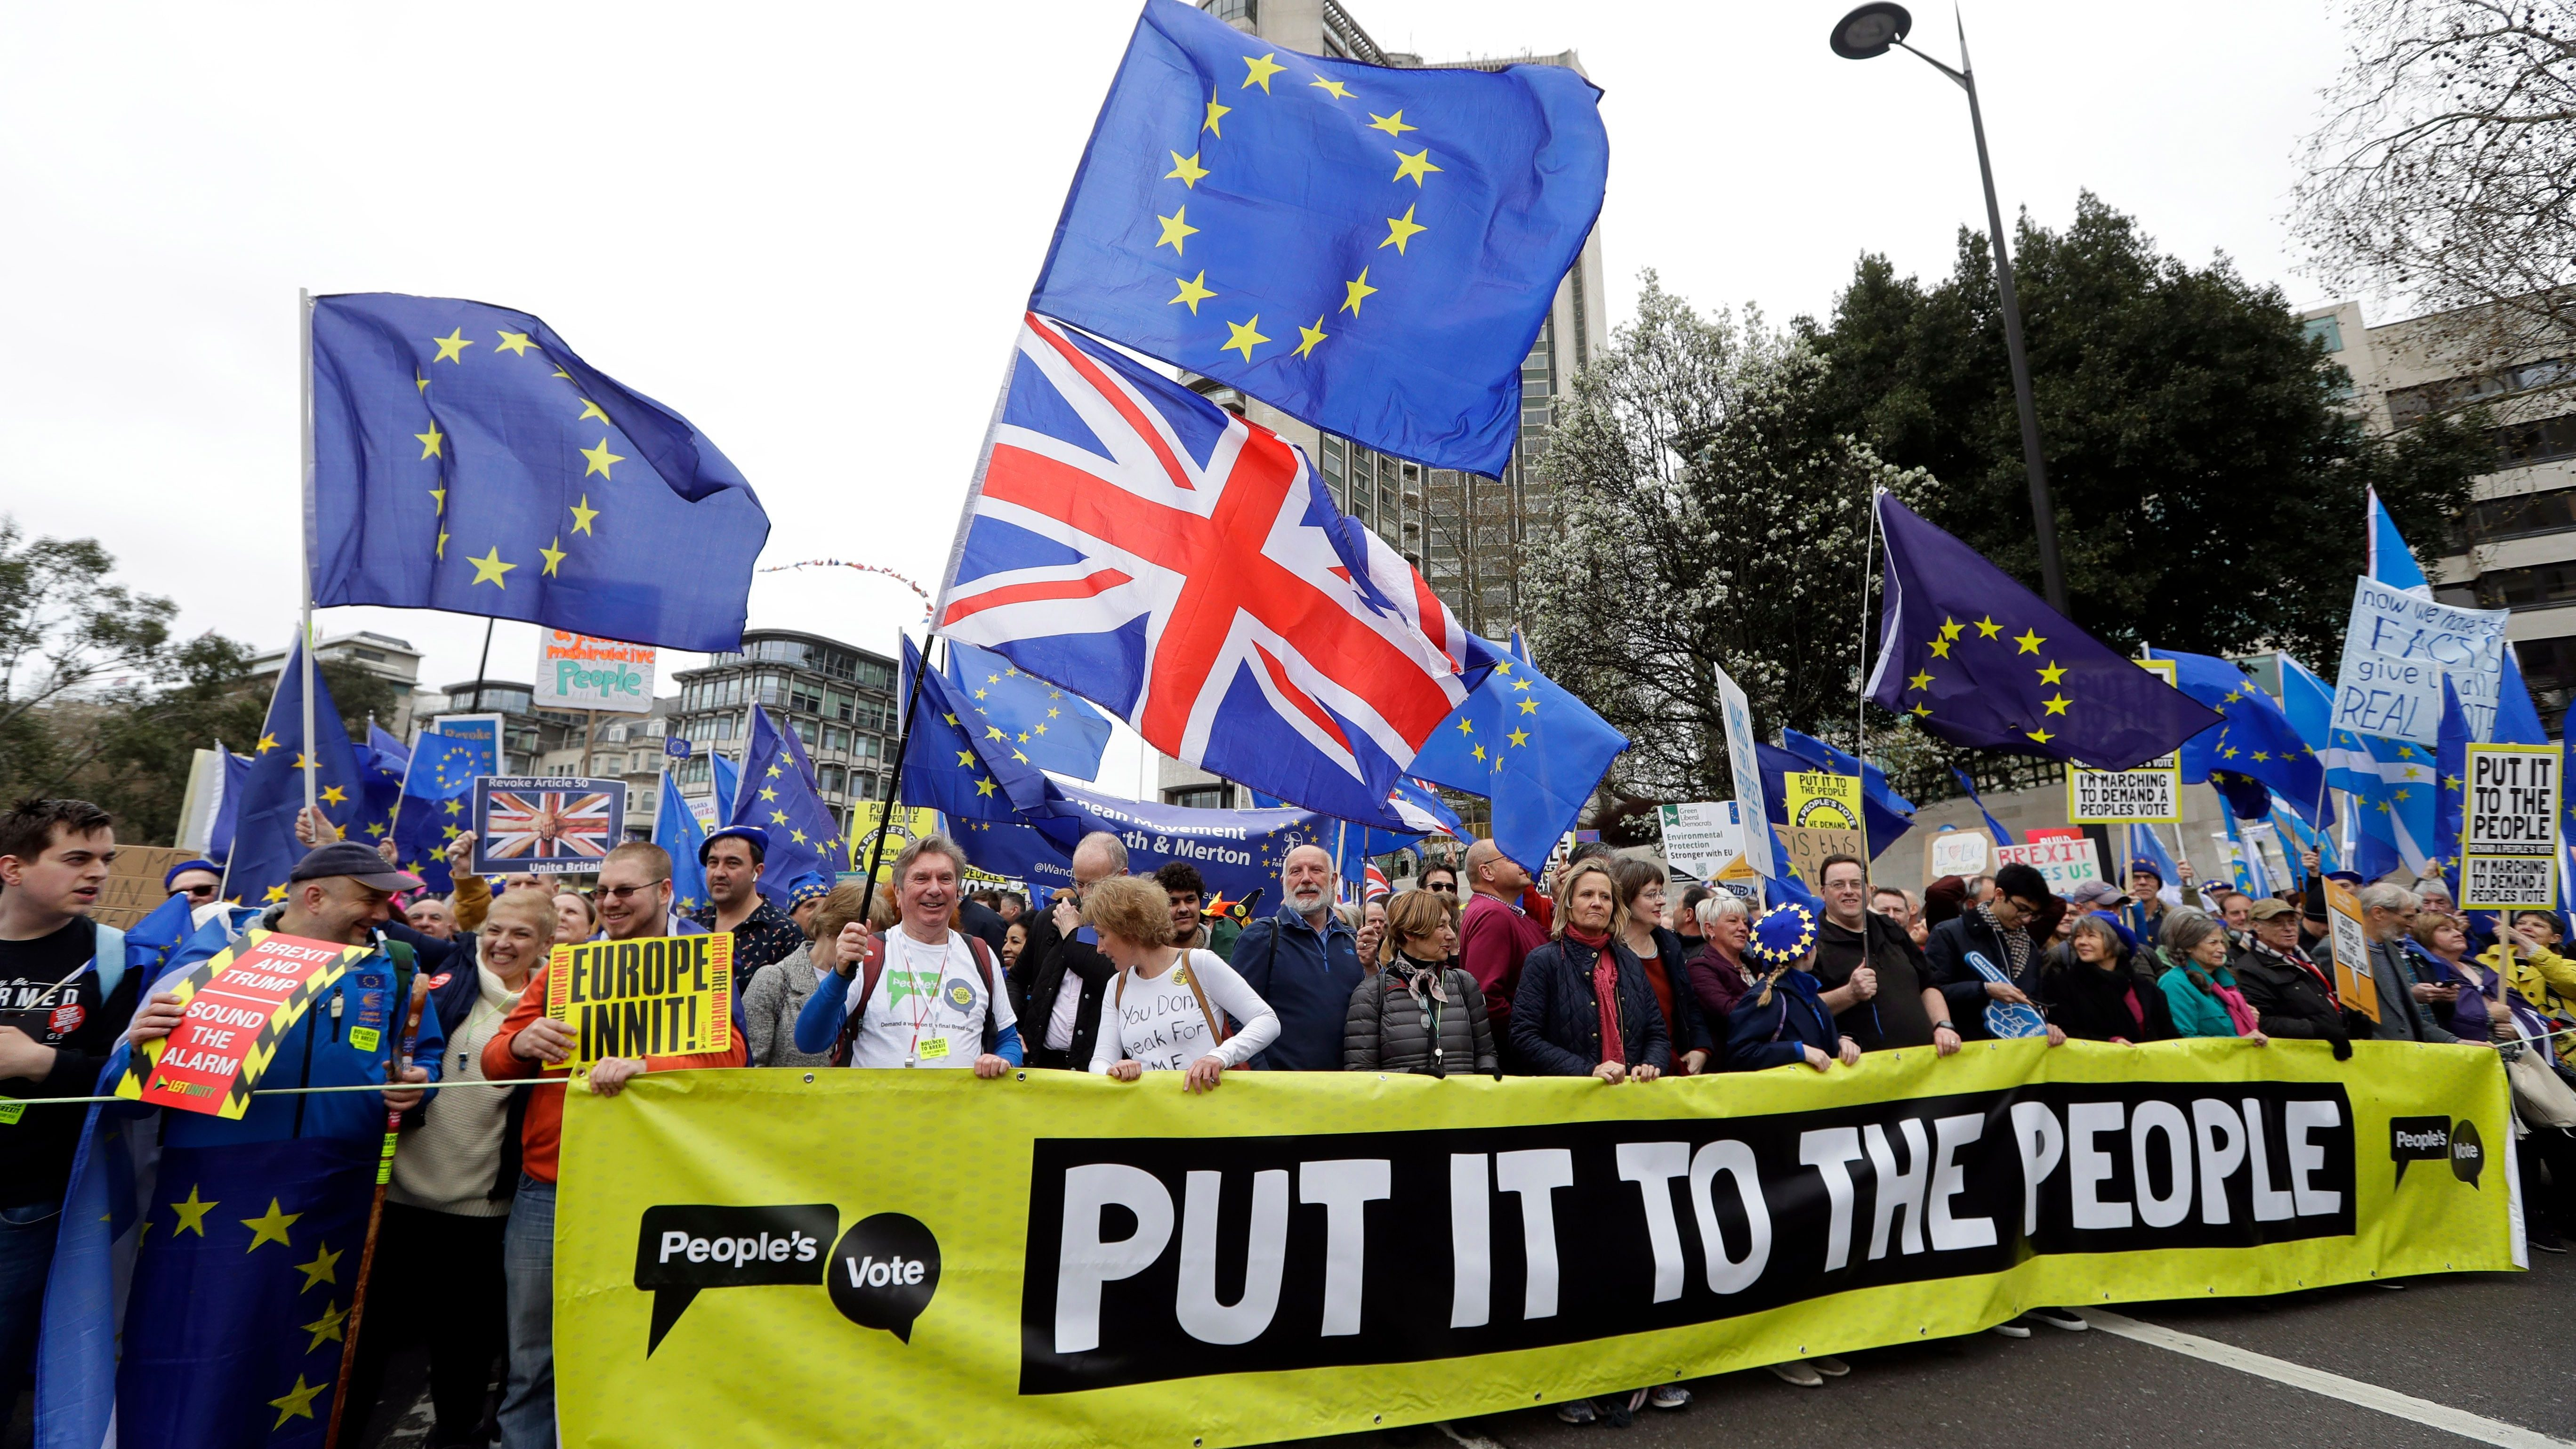 A group of people marching to have a final say on the Brexit